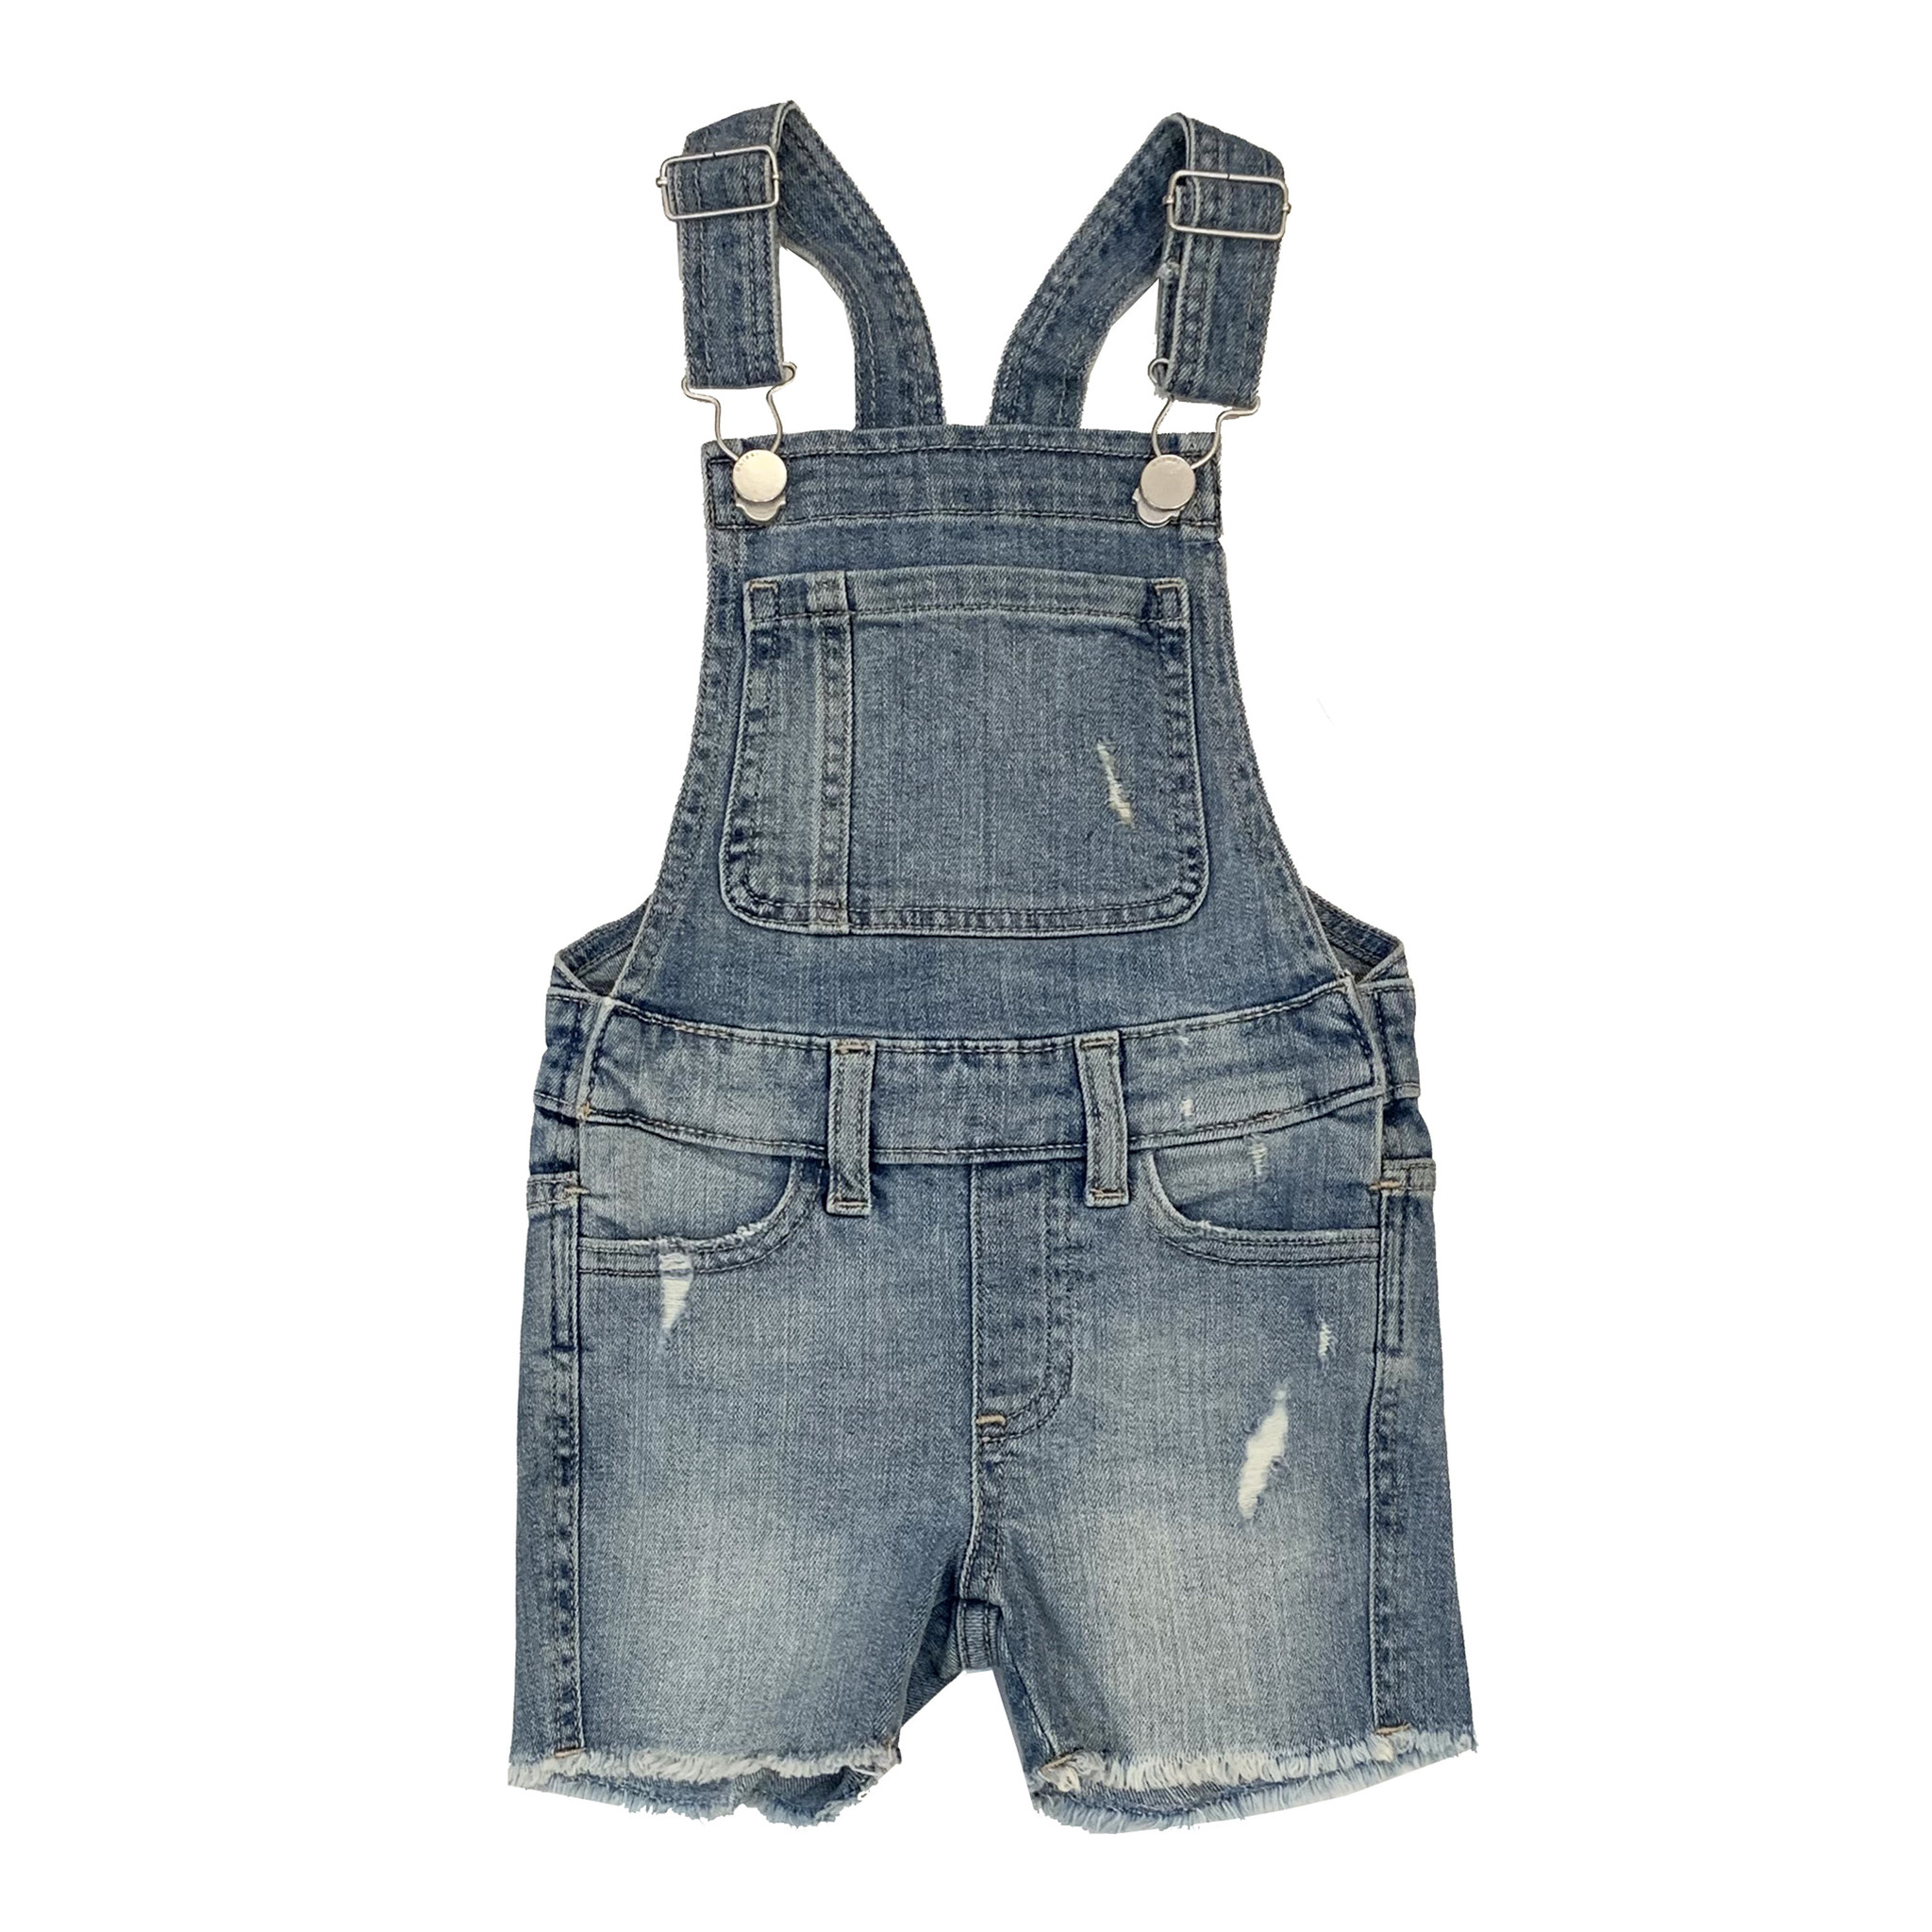 DL1961 Denim Overall Shorts